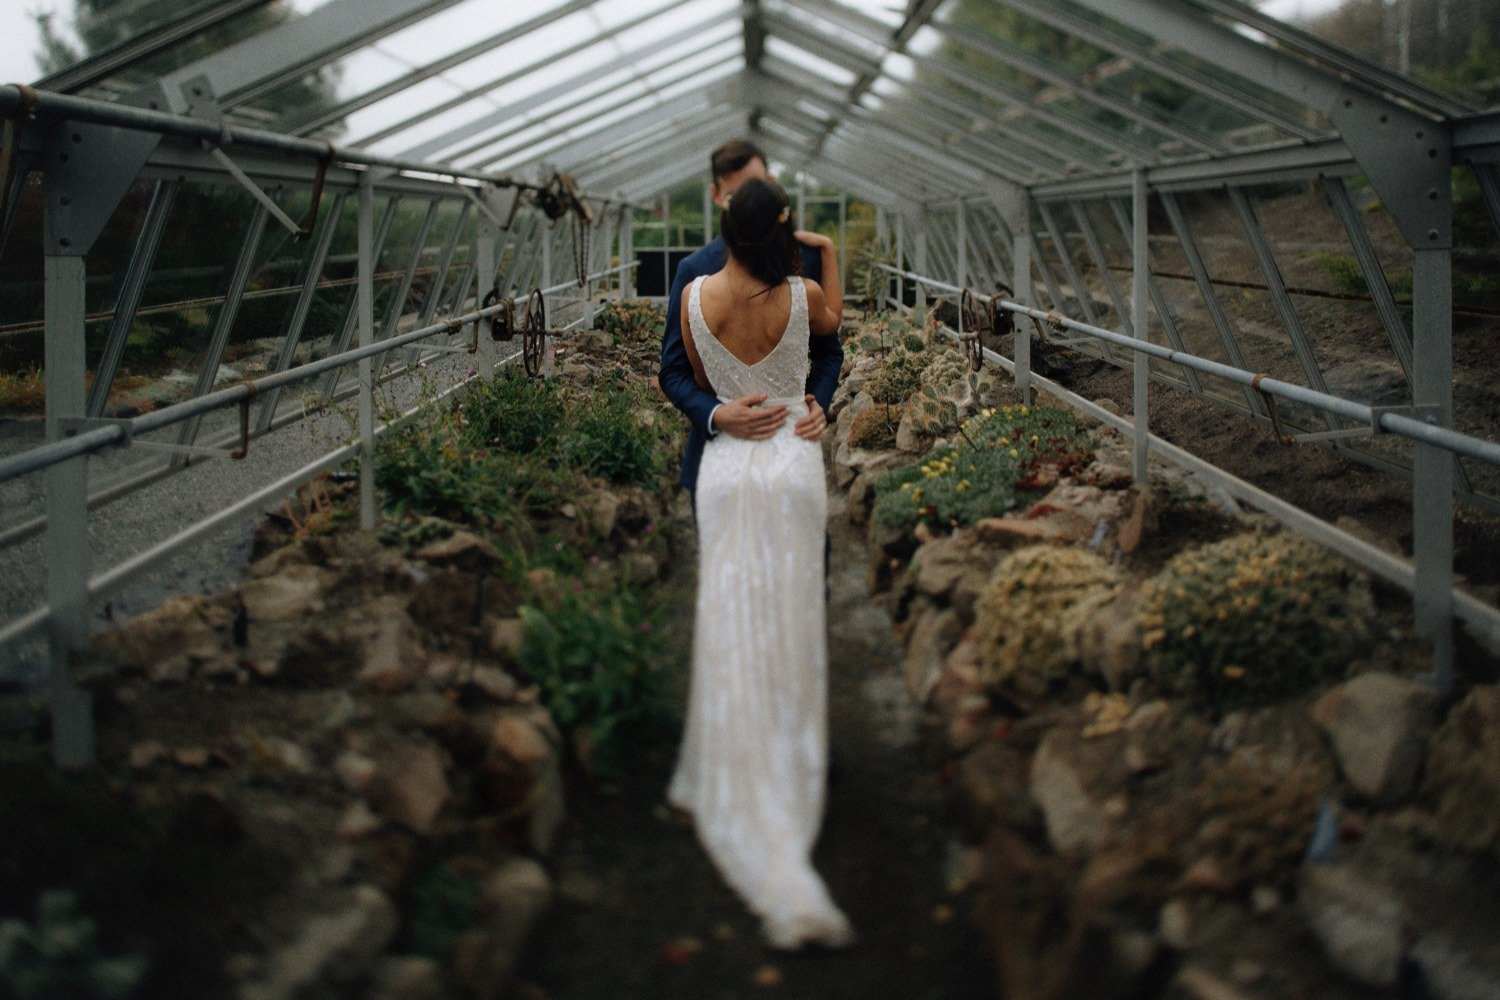 wedding photos at ubc botanical garden desert plants greenhouse